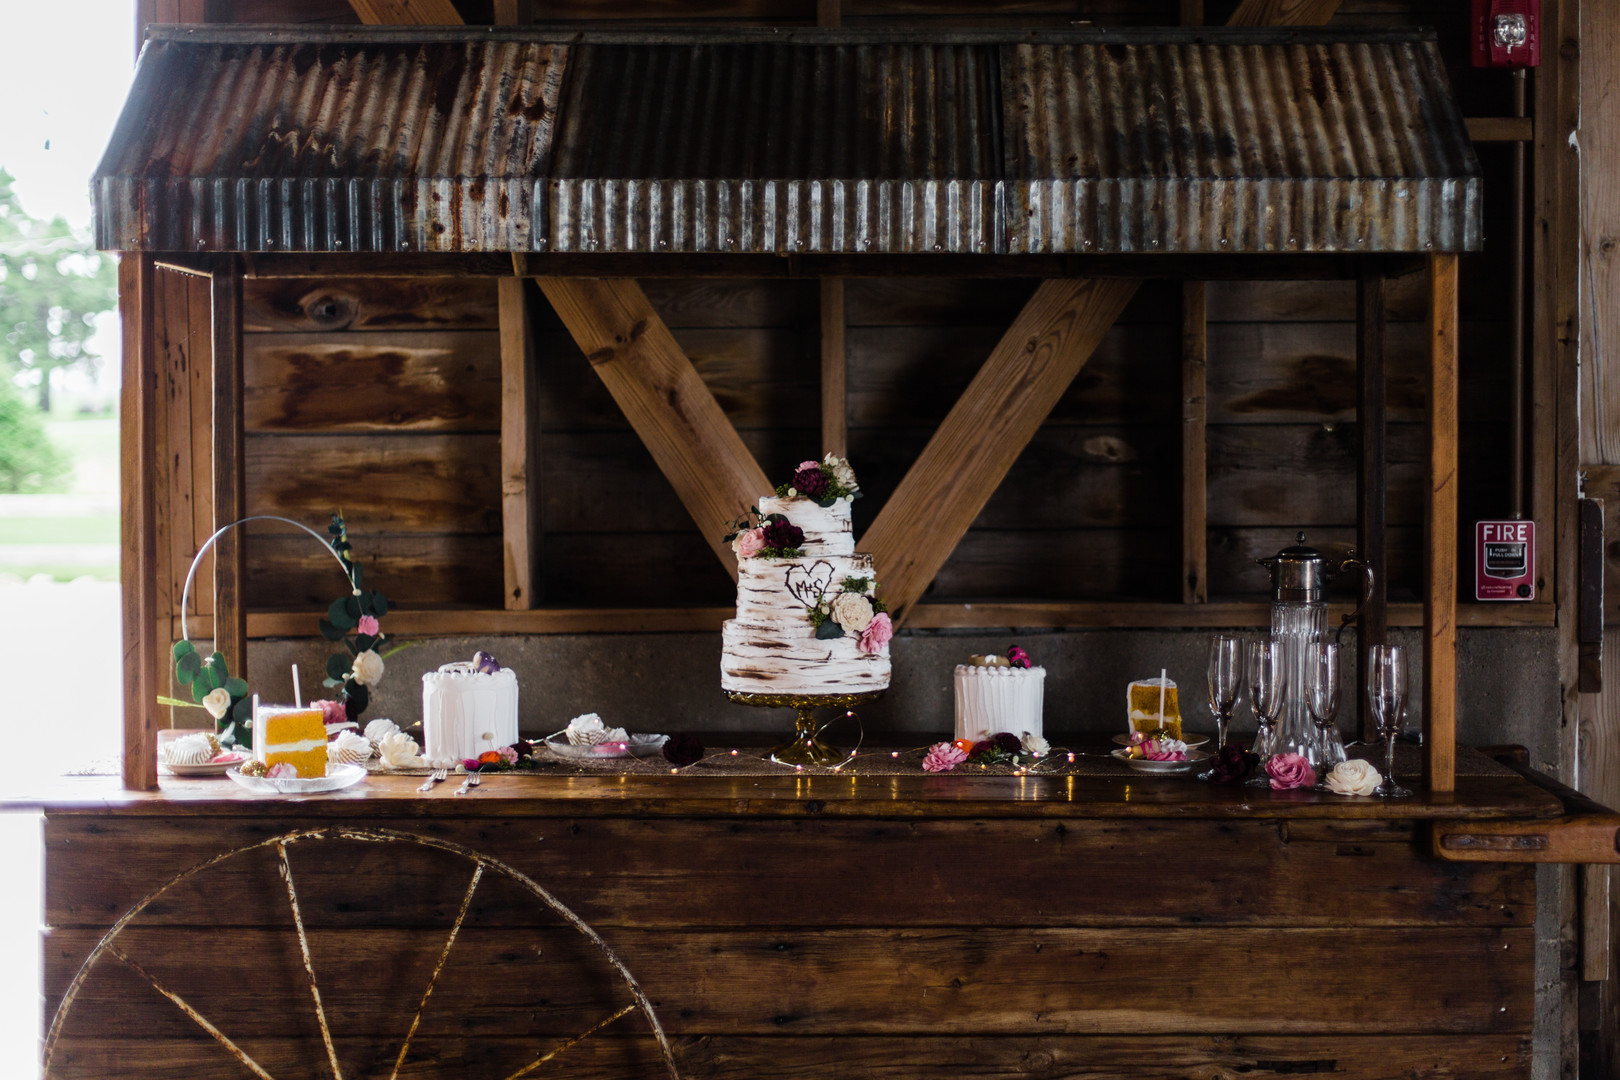 Barn wedding dessert table inspiration: Rustic barn wedding inspiration captured by Grace Rios Photography. See more fall wedding ideas at CHItheeWED.com!